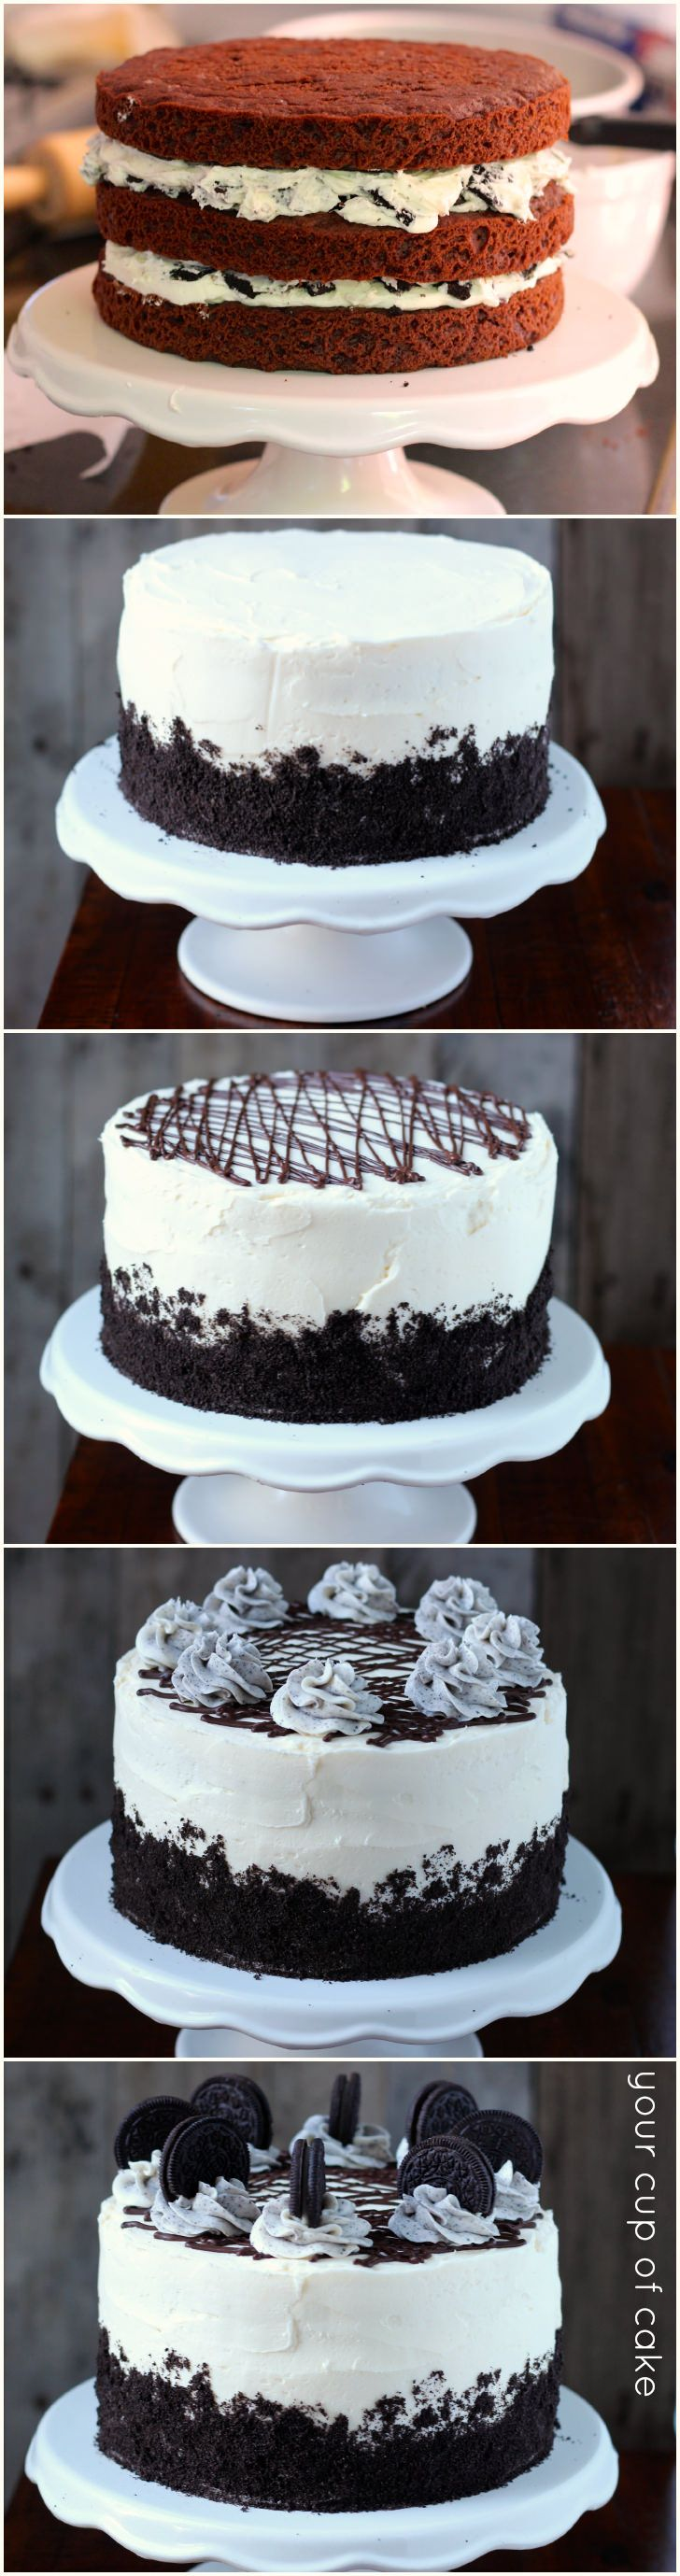 How to make an Oreo Cake